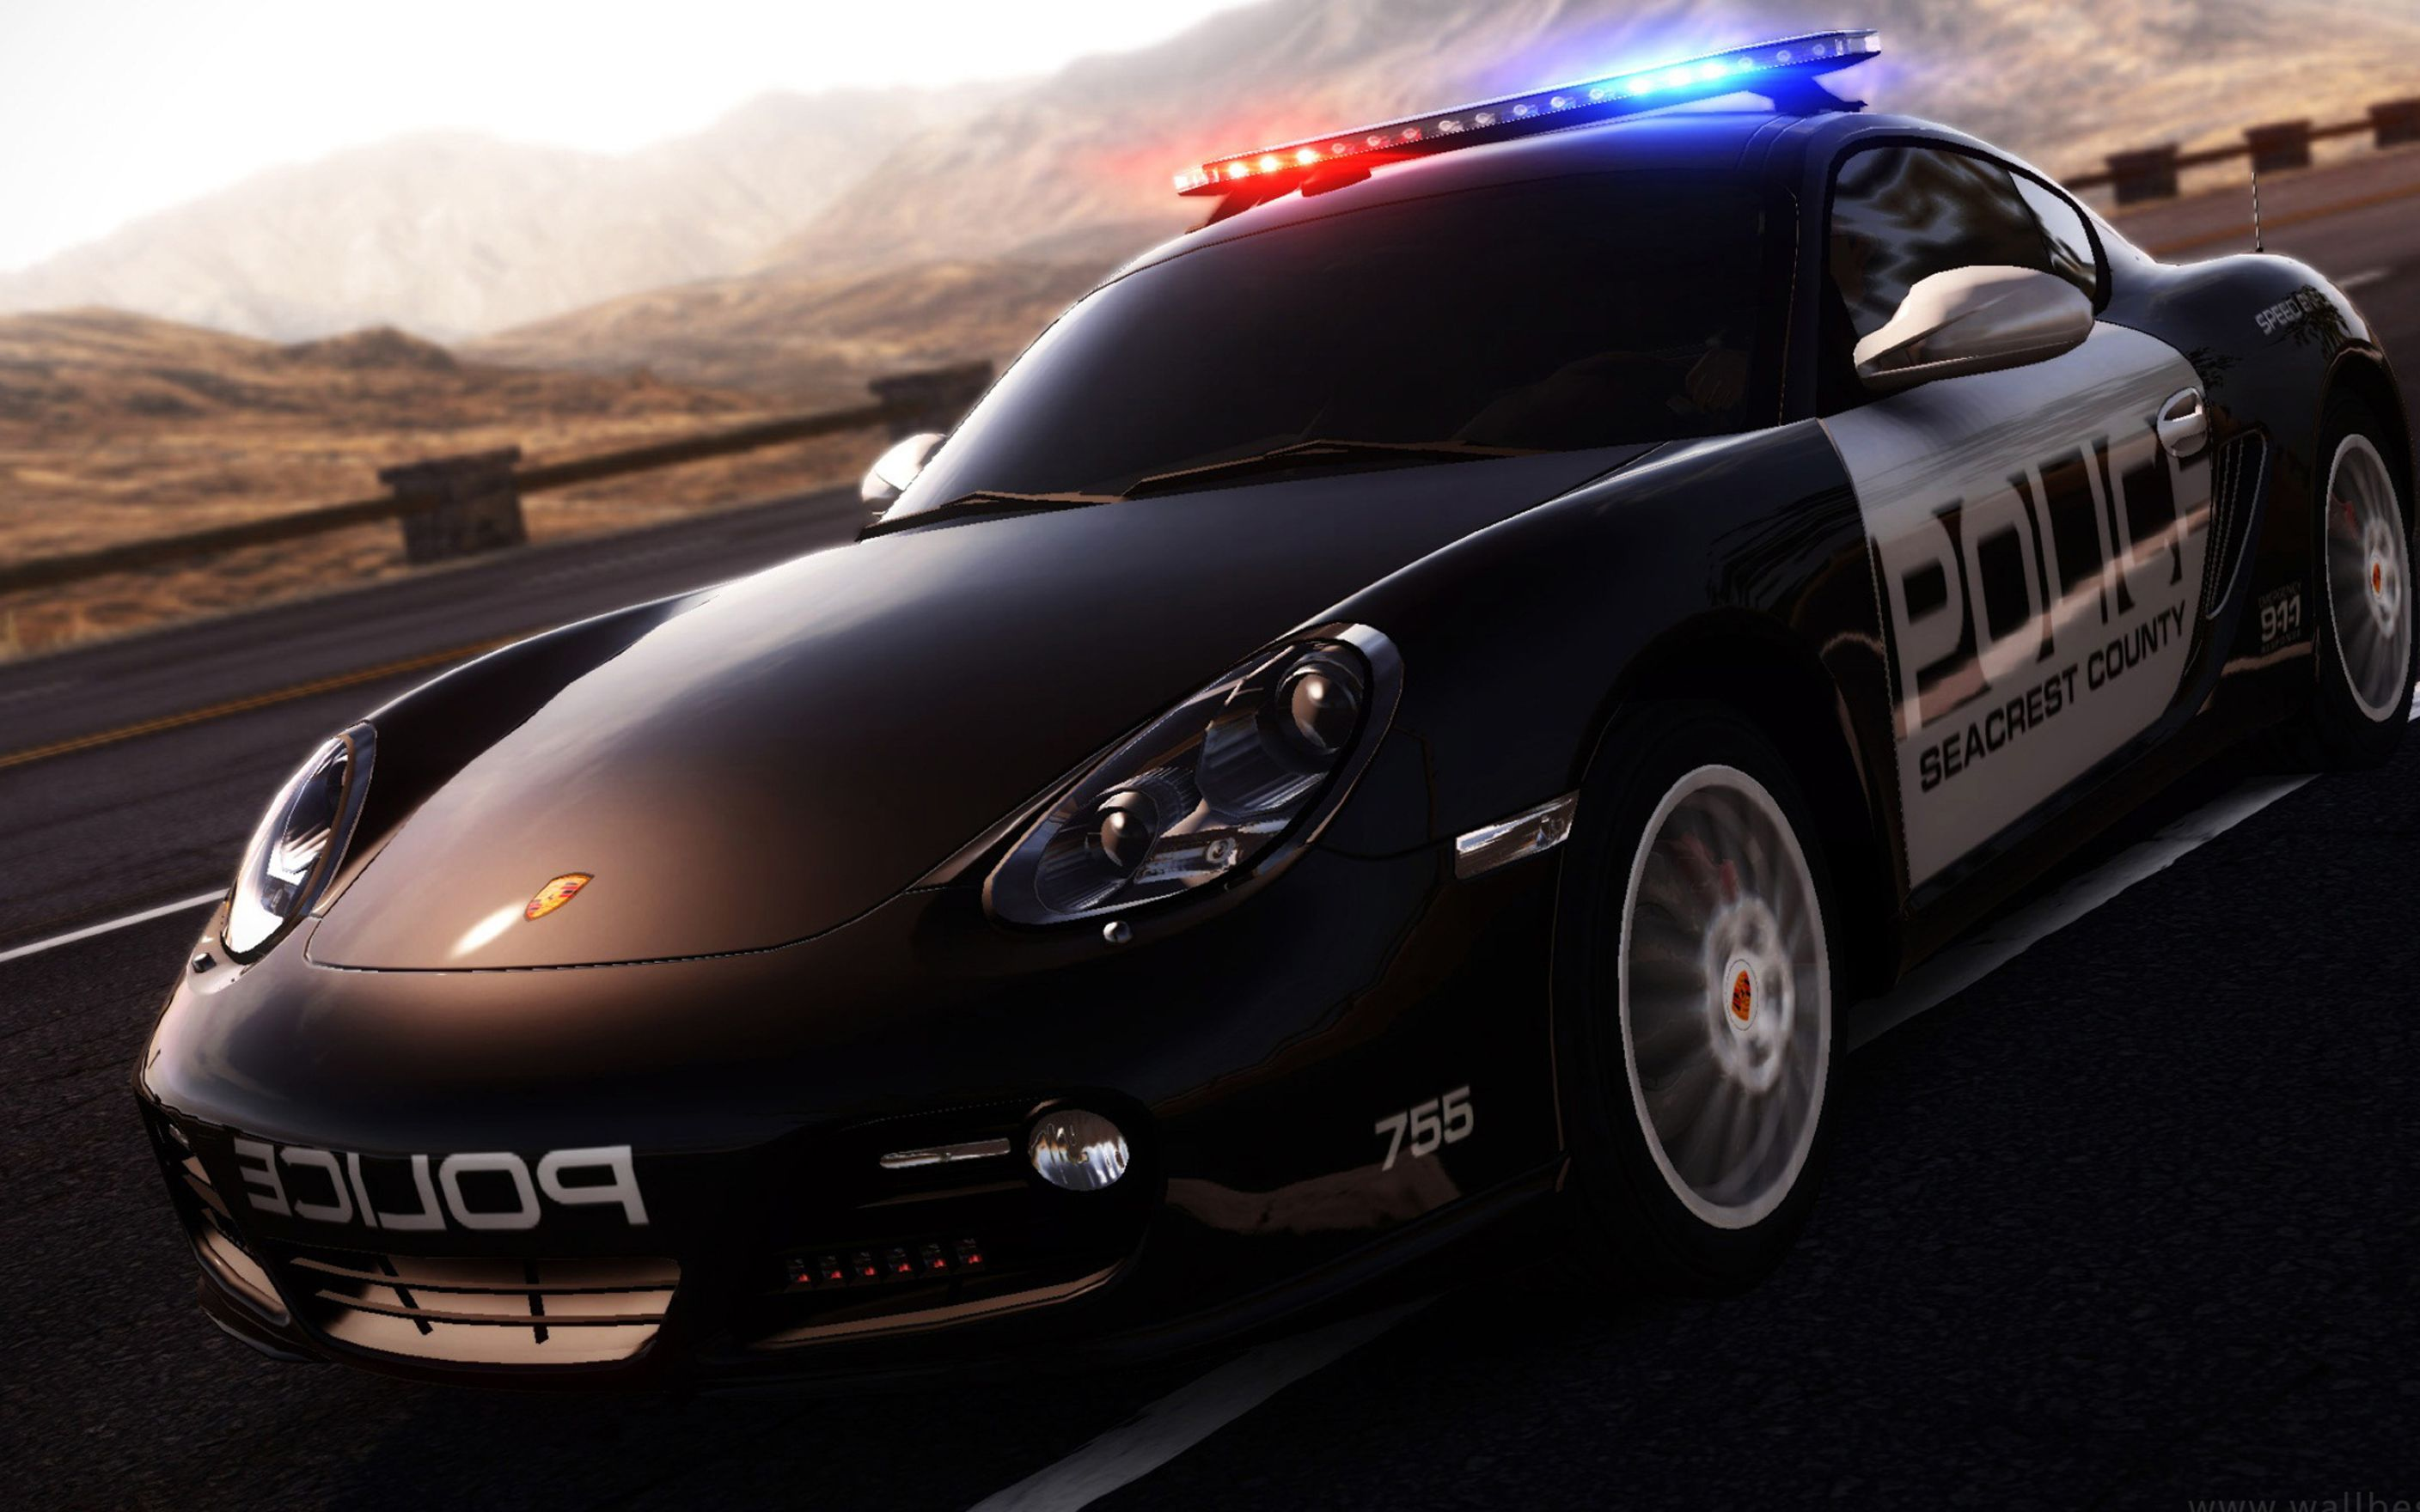 3d Police Car Desktop Backgrounds Wallpaper Desktop Hd